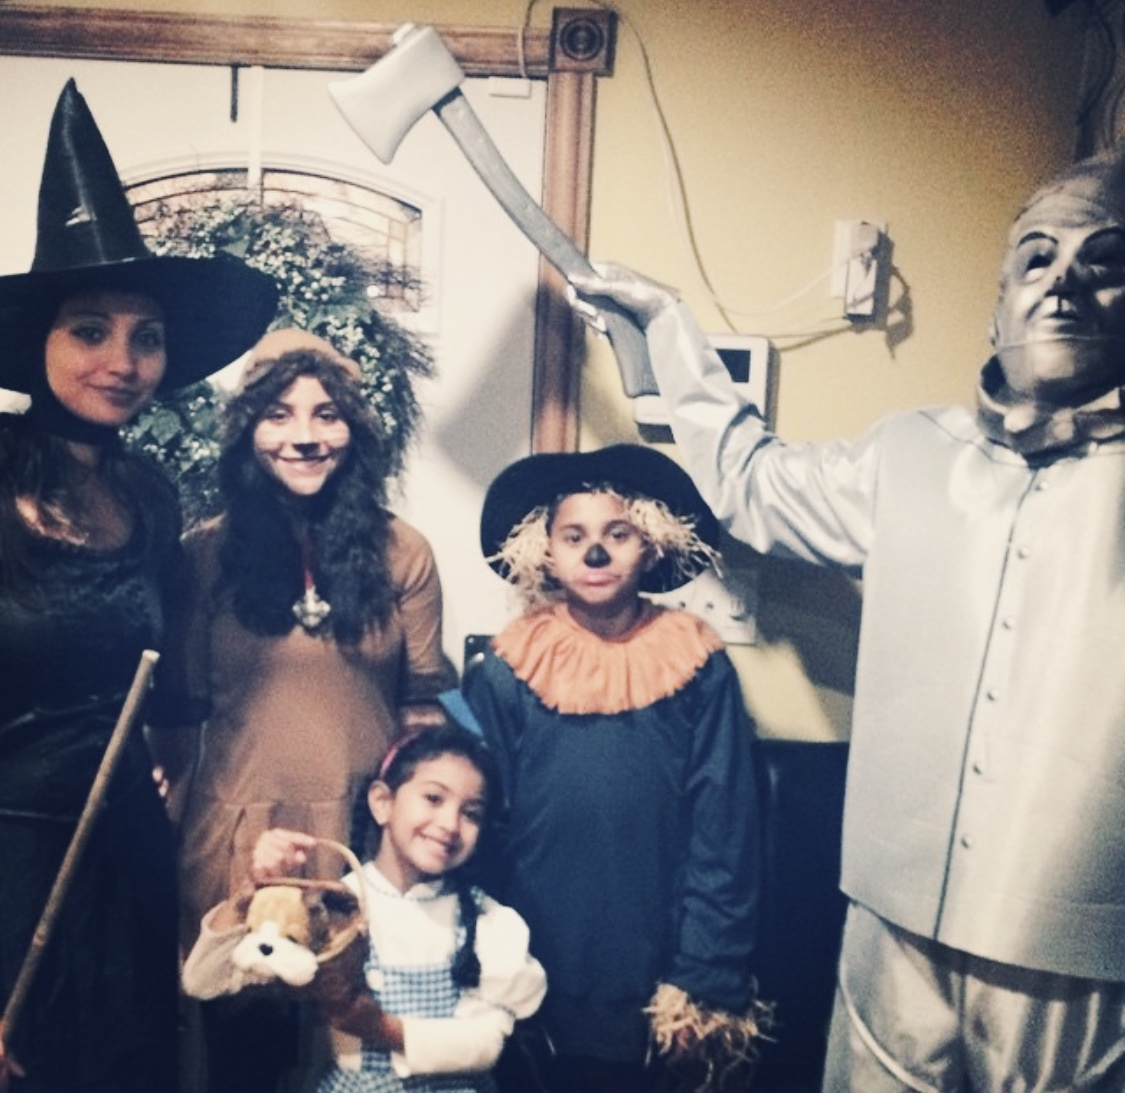 Halloween 2015: The Wizard of Oz